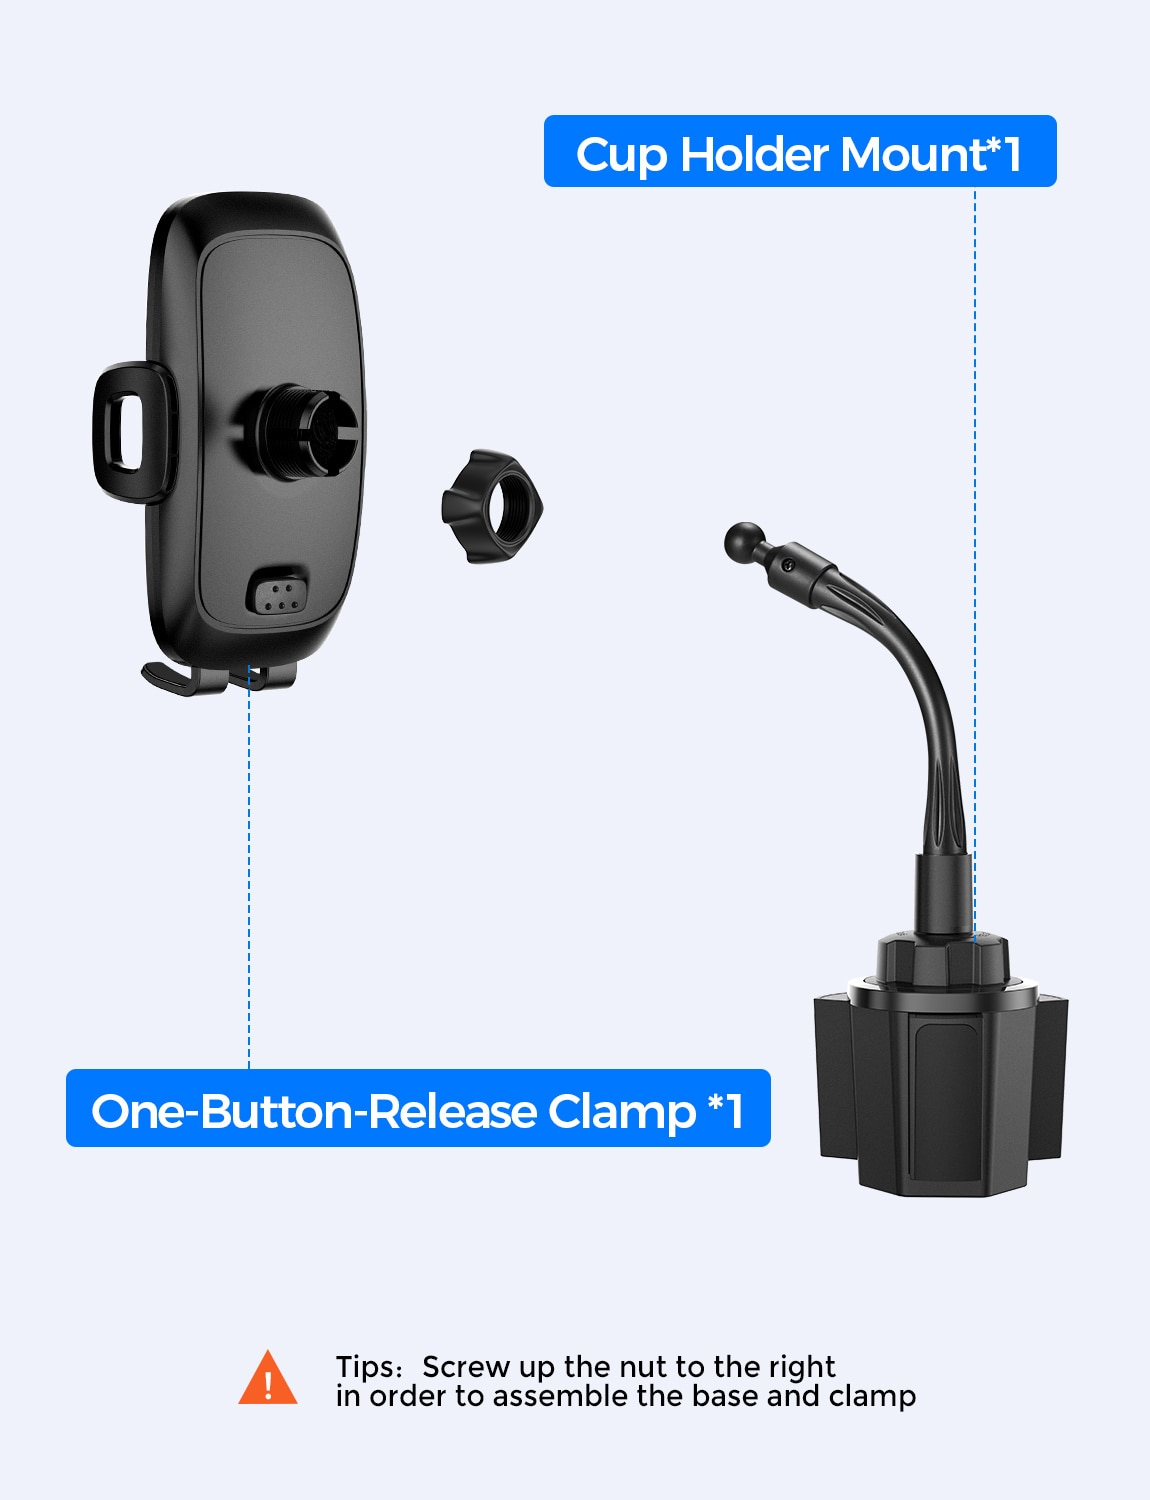 H33f61b8305a24bf49ee29197cc156269T - Mpow CA136 Car Phone Holder 360 Degree Flexible Long Arm and Adjustable Clamp Universal Phone Cradle Mount for For iPhone 12 XS